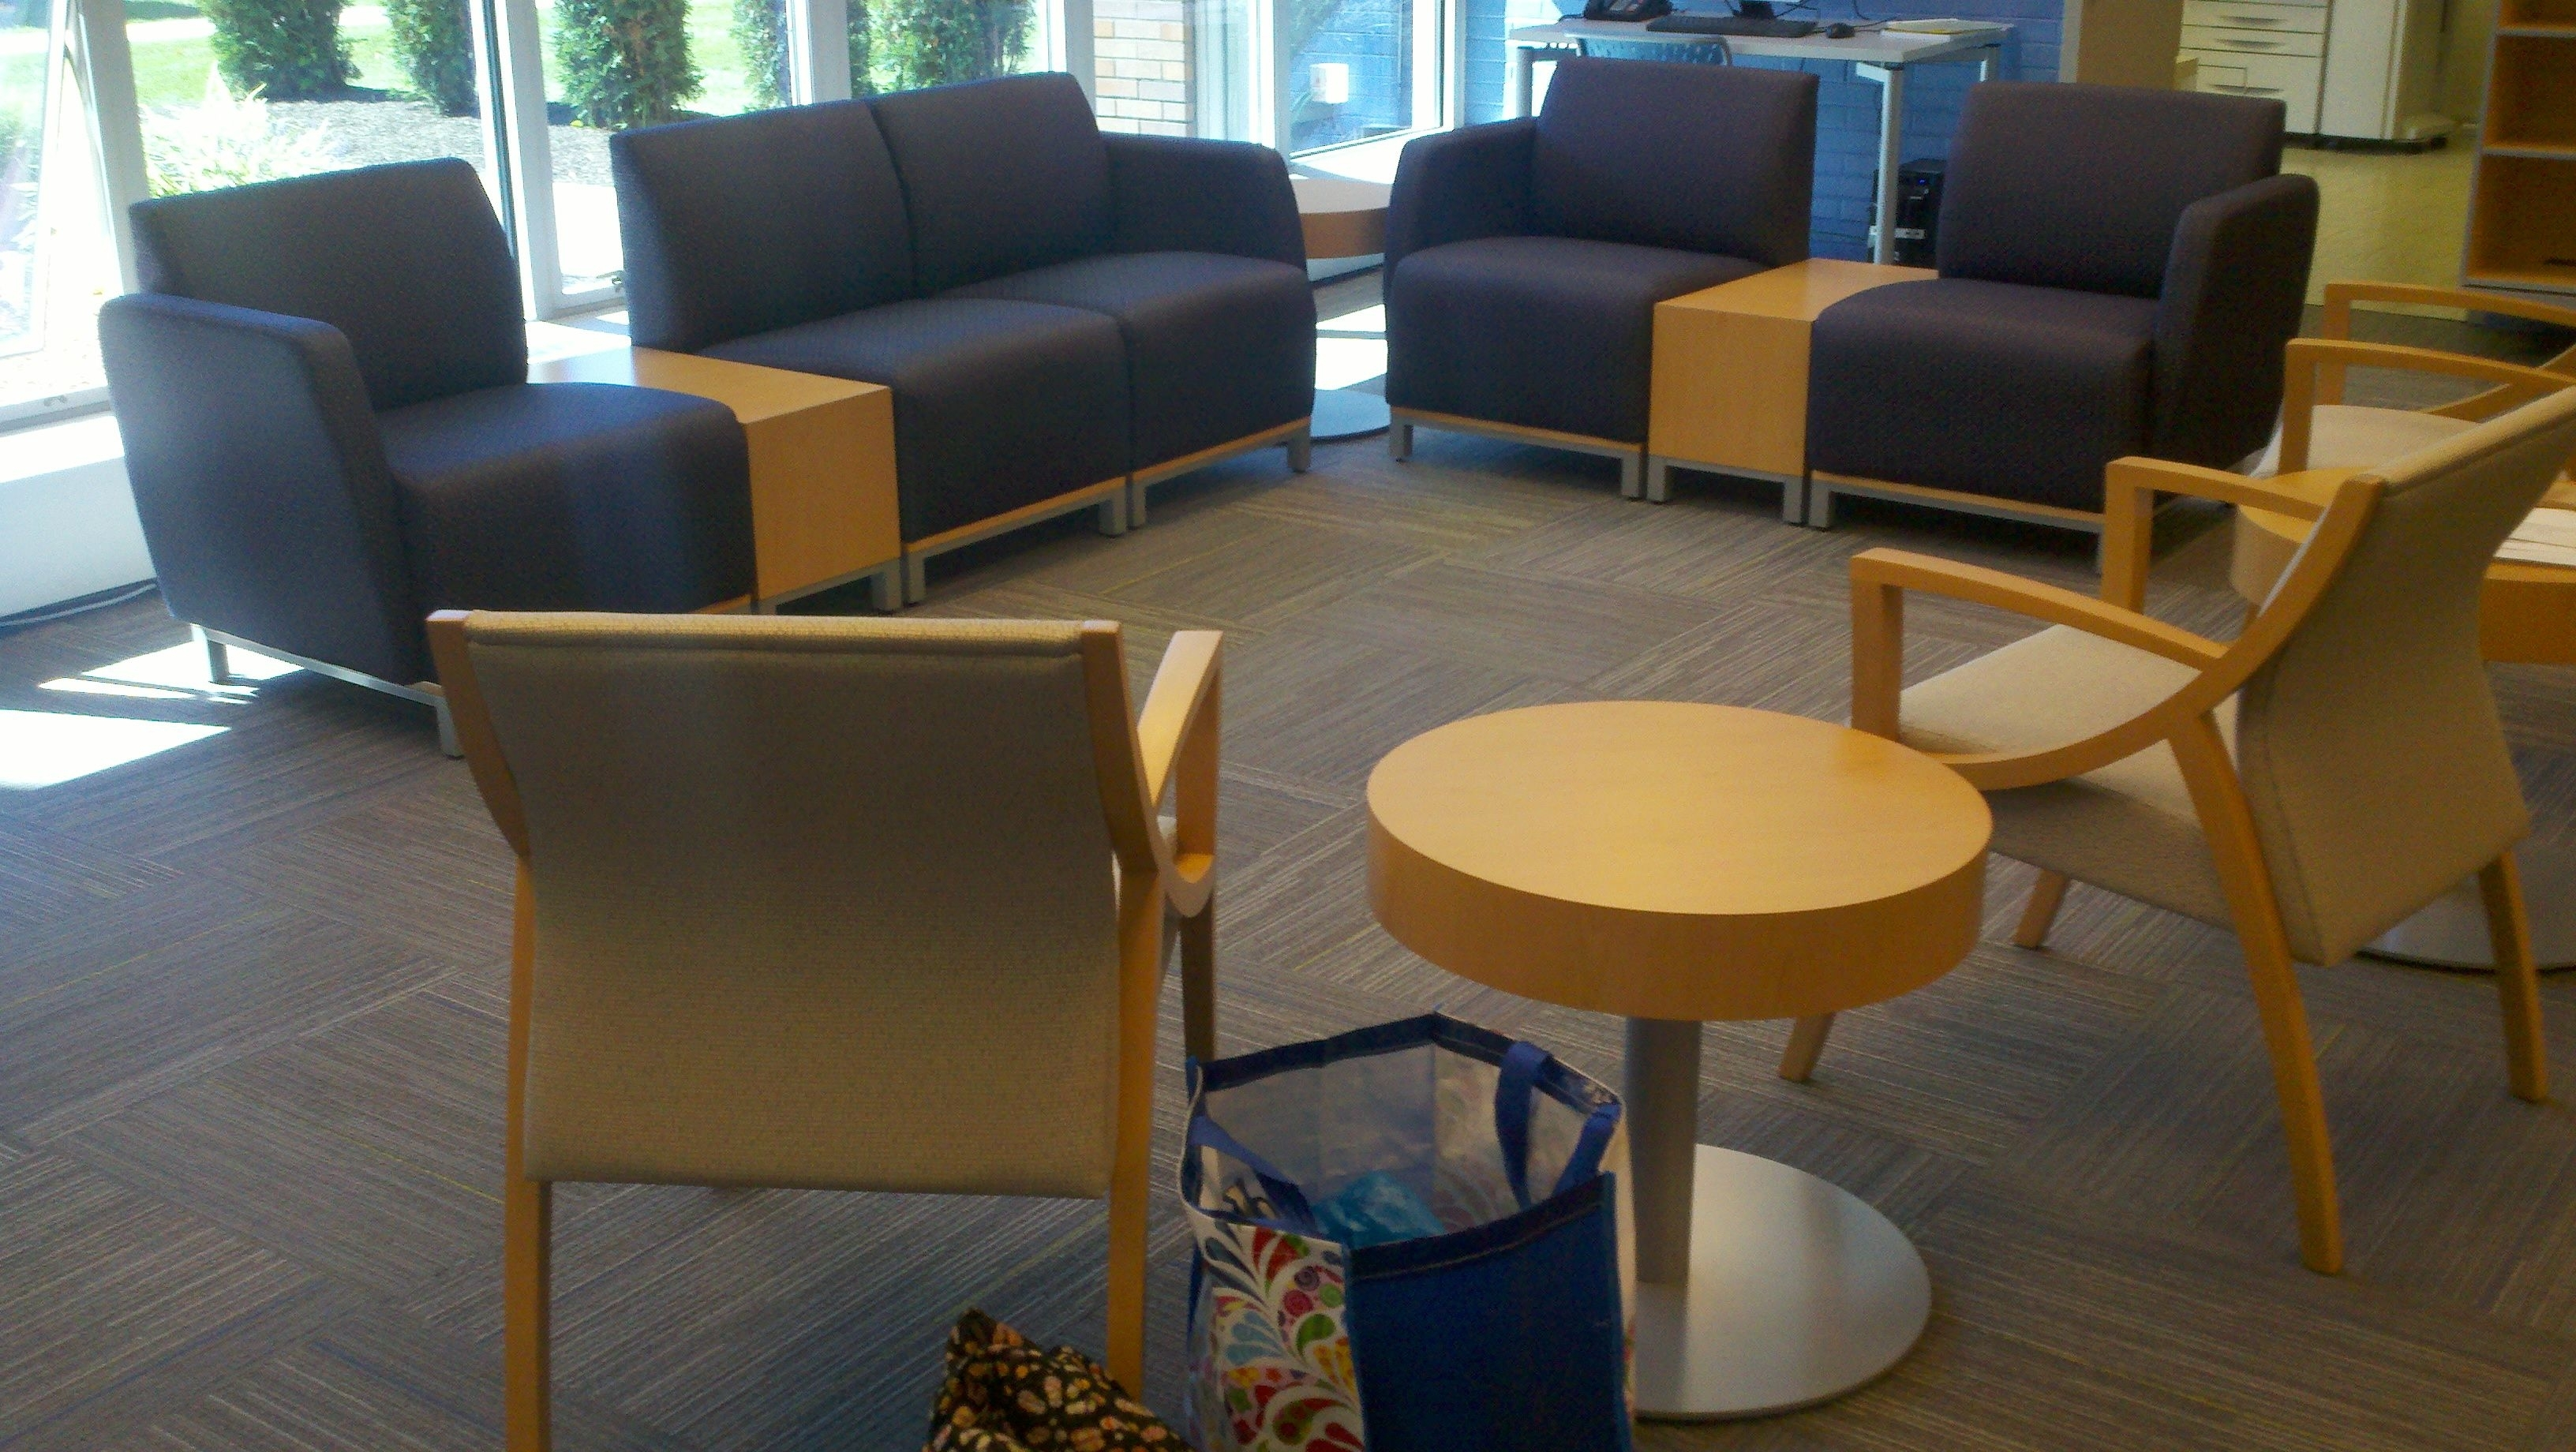 Famous Magnificat Faculty Lounge (cleveland, Oh) Swift Lounge Seating And In Swift Side Chairs (View 19 of 20)